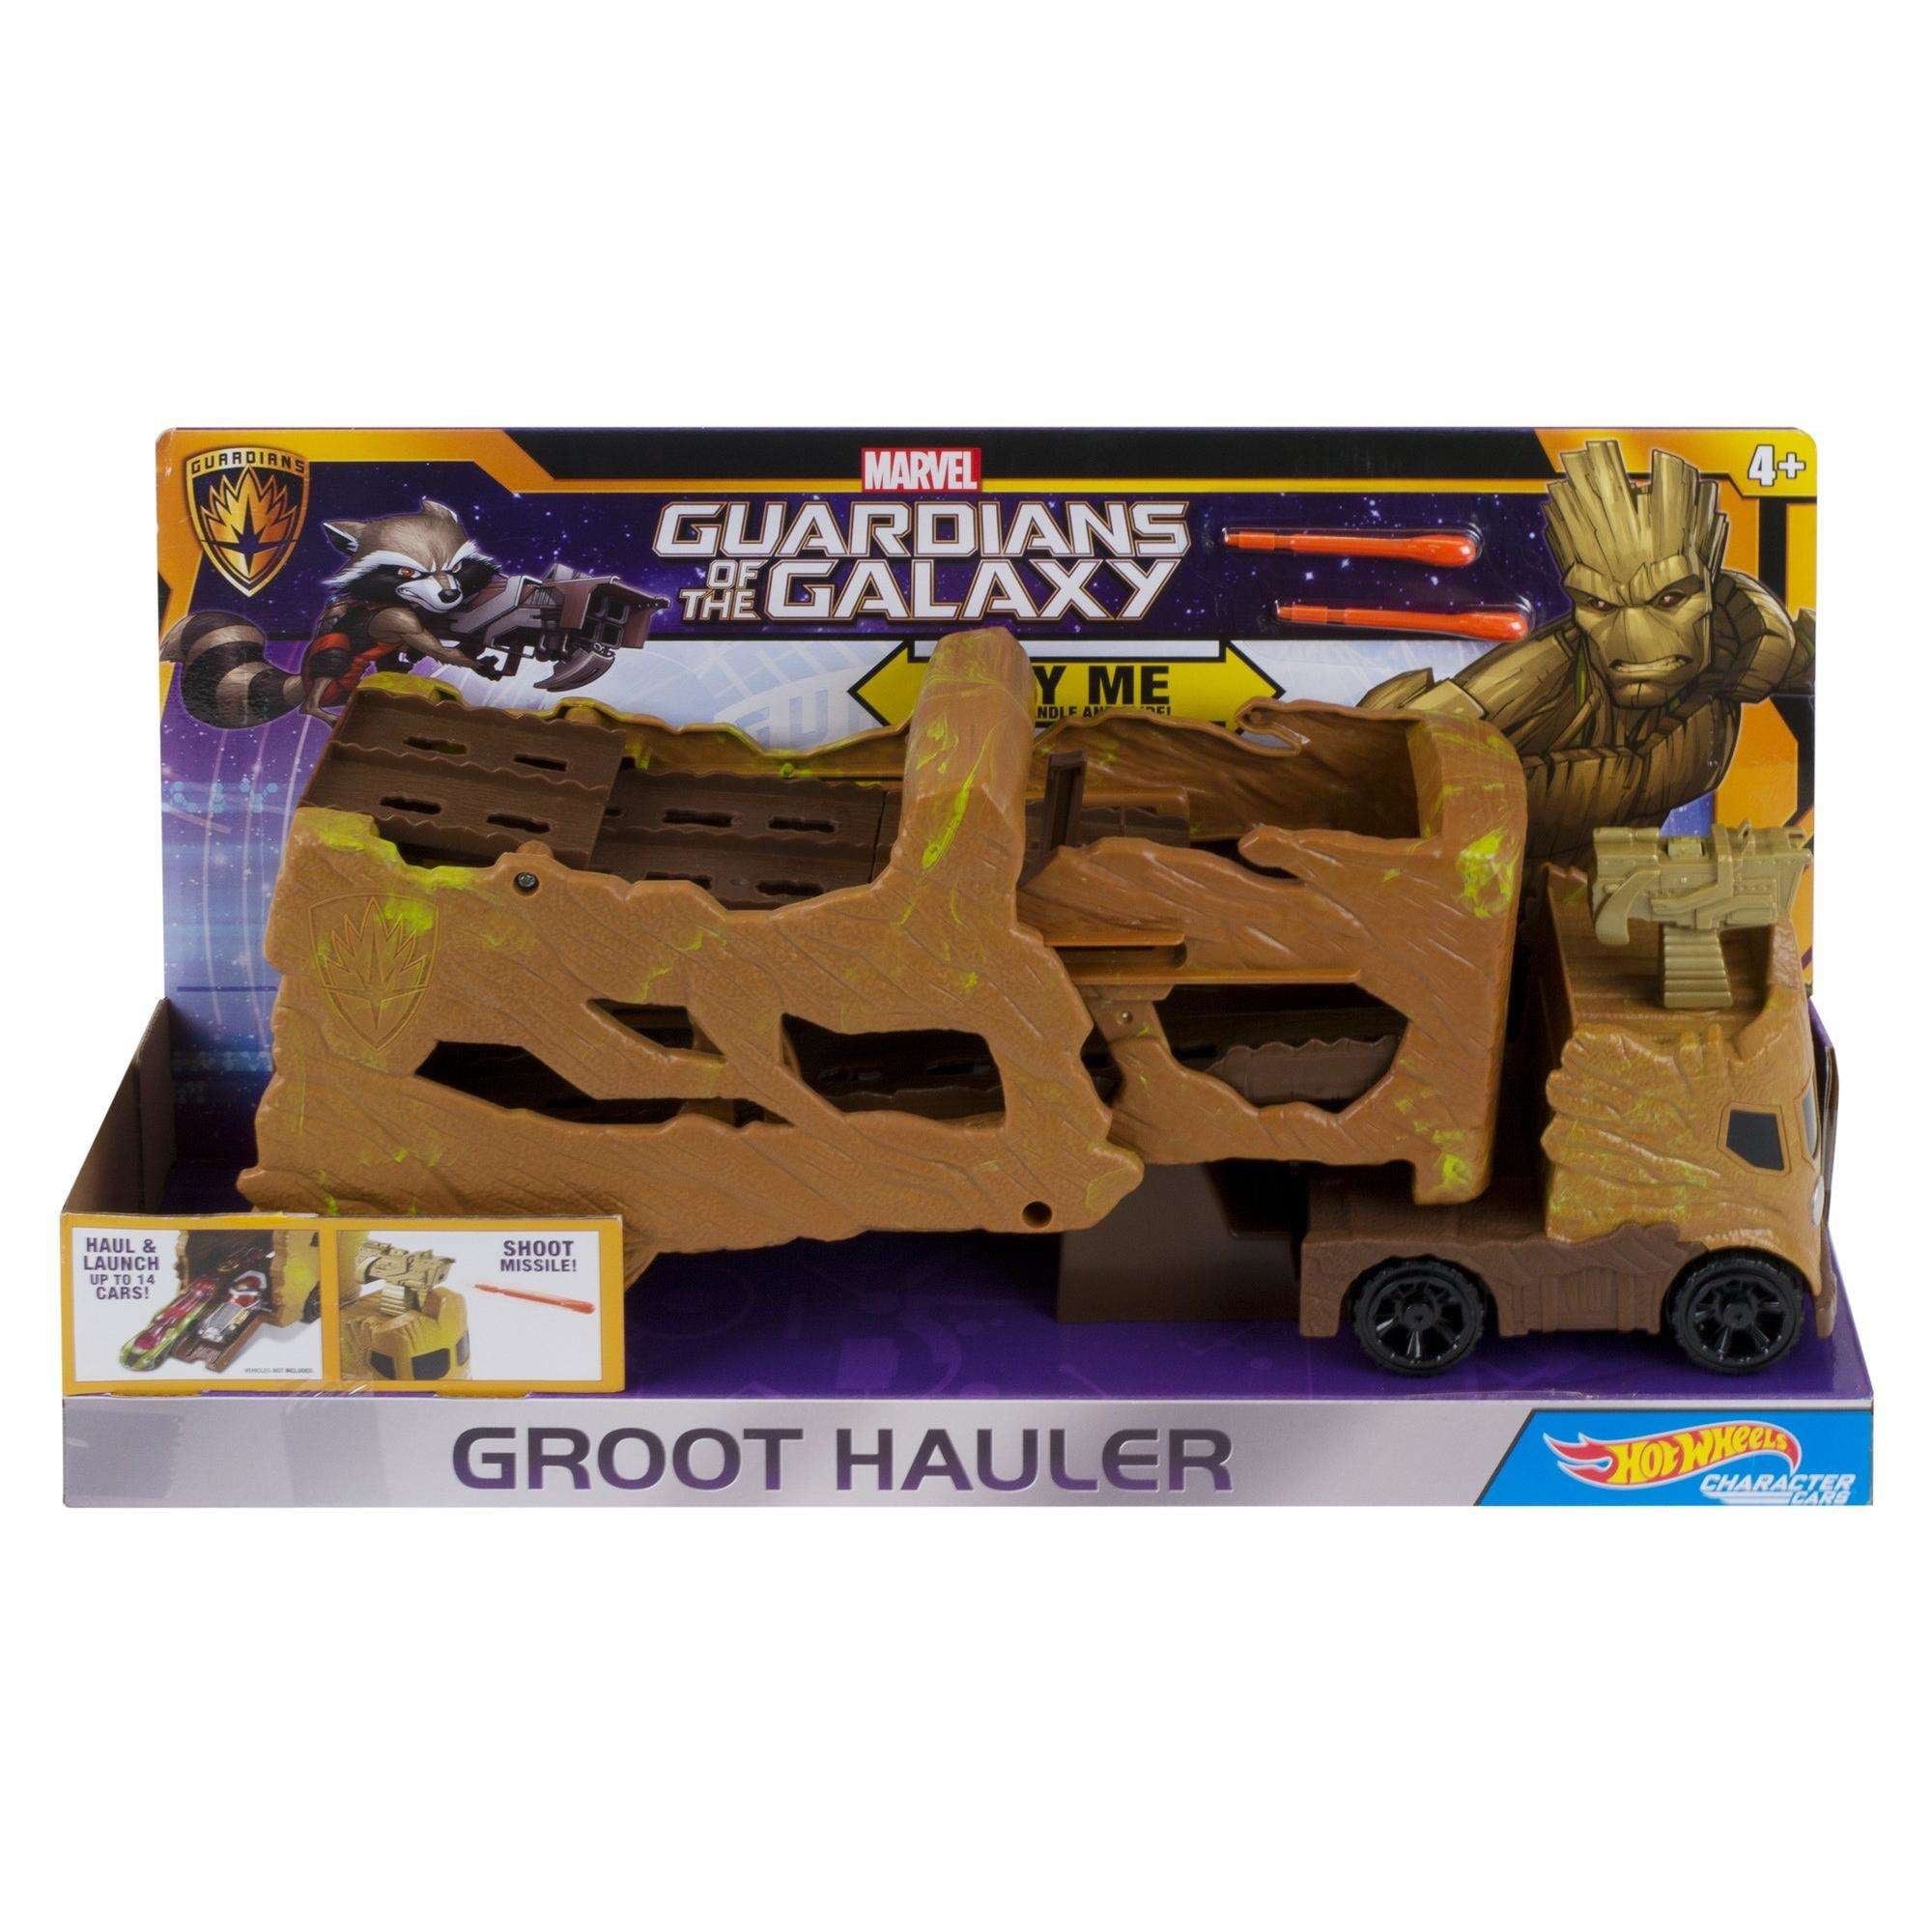 Hot Wheels Marvel Groot Hauler Vehicle - Walmart.com